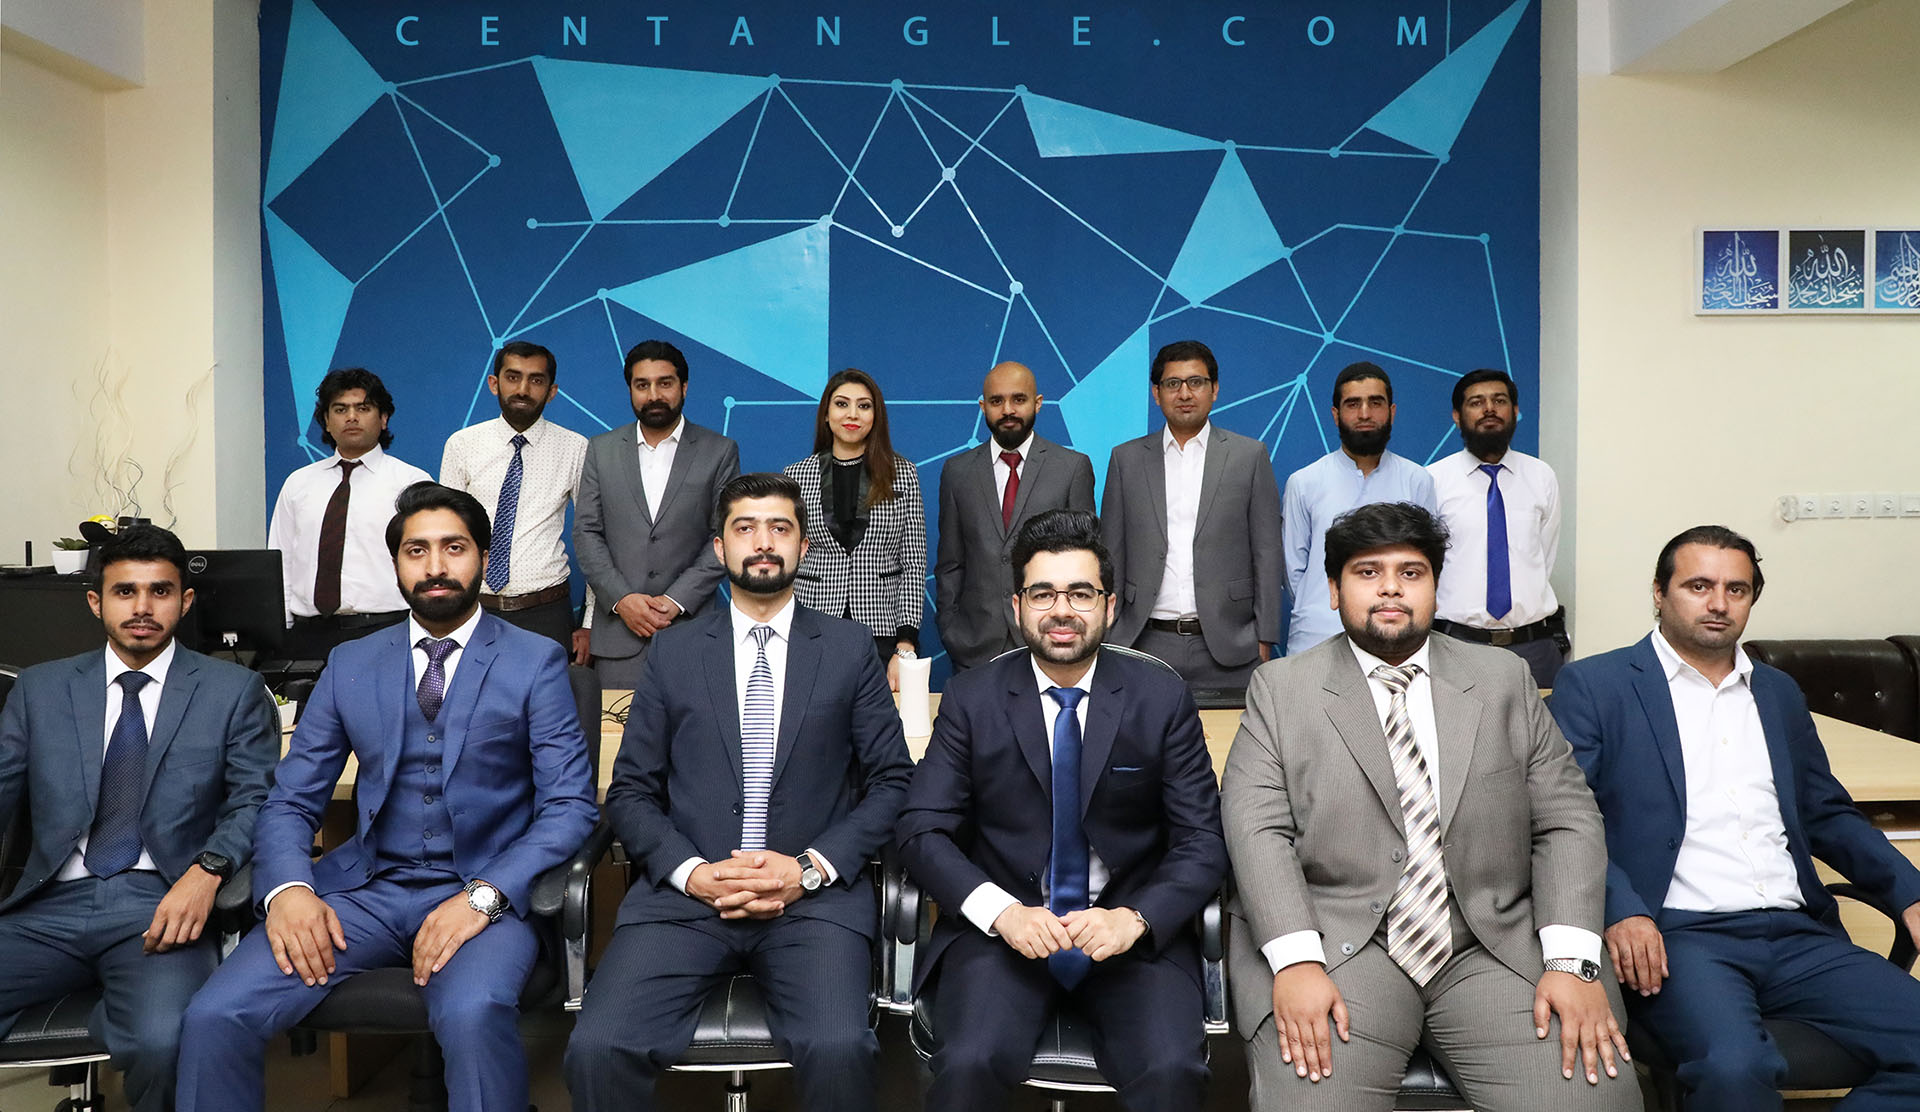 Team Centangle Interactive Pvt. Ltd.